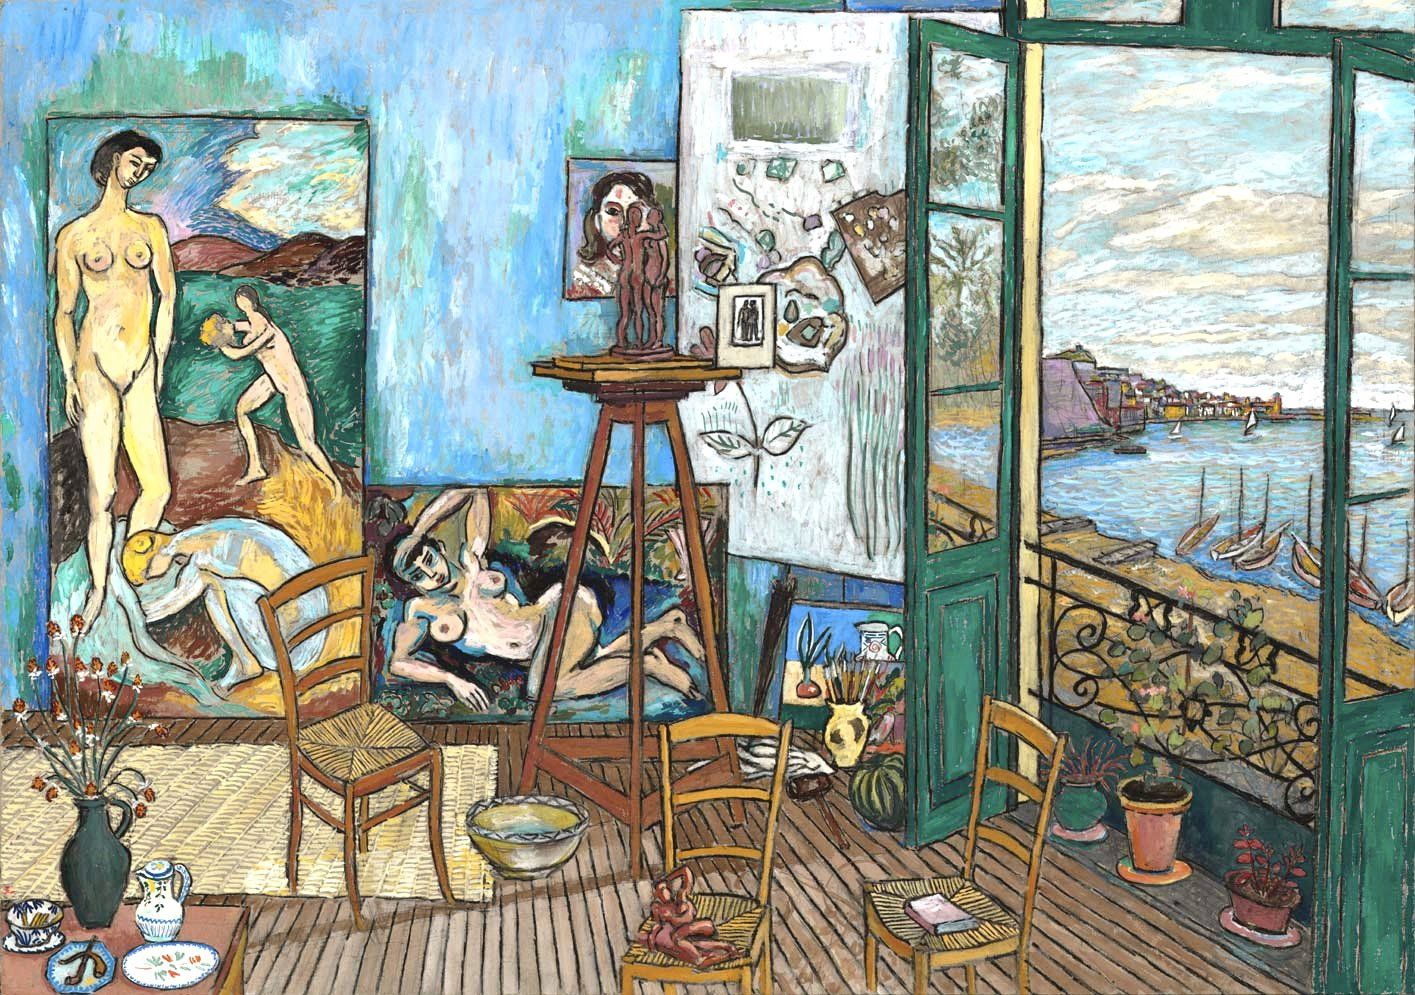 Matisse 39 s studio collioure 1907 damian elwes artish for Matisse fenetre ouverte collioure